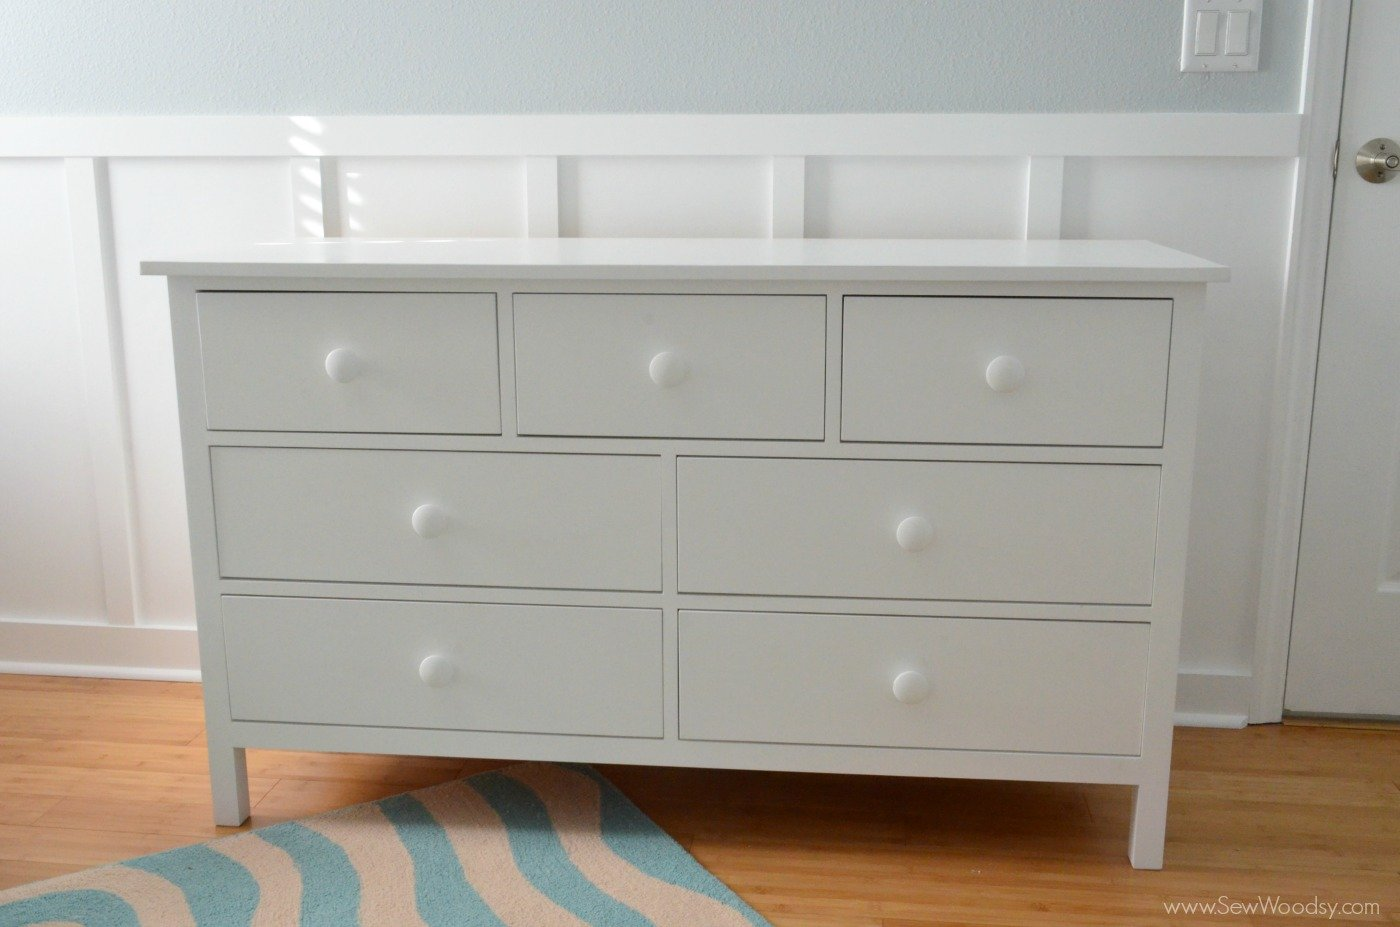 How to Build an Extra Wide Simple Dresser - Sew Woodsy